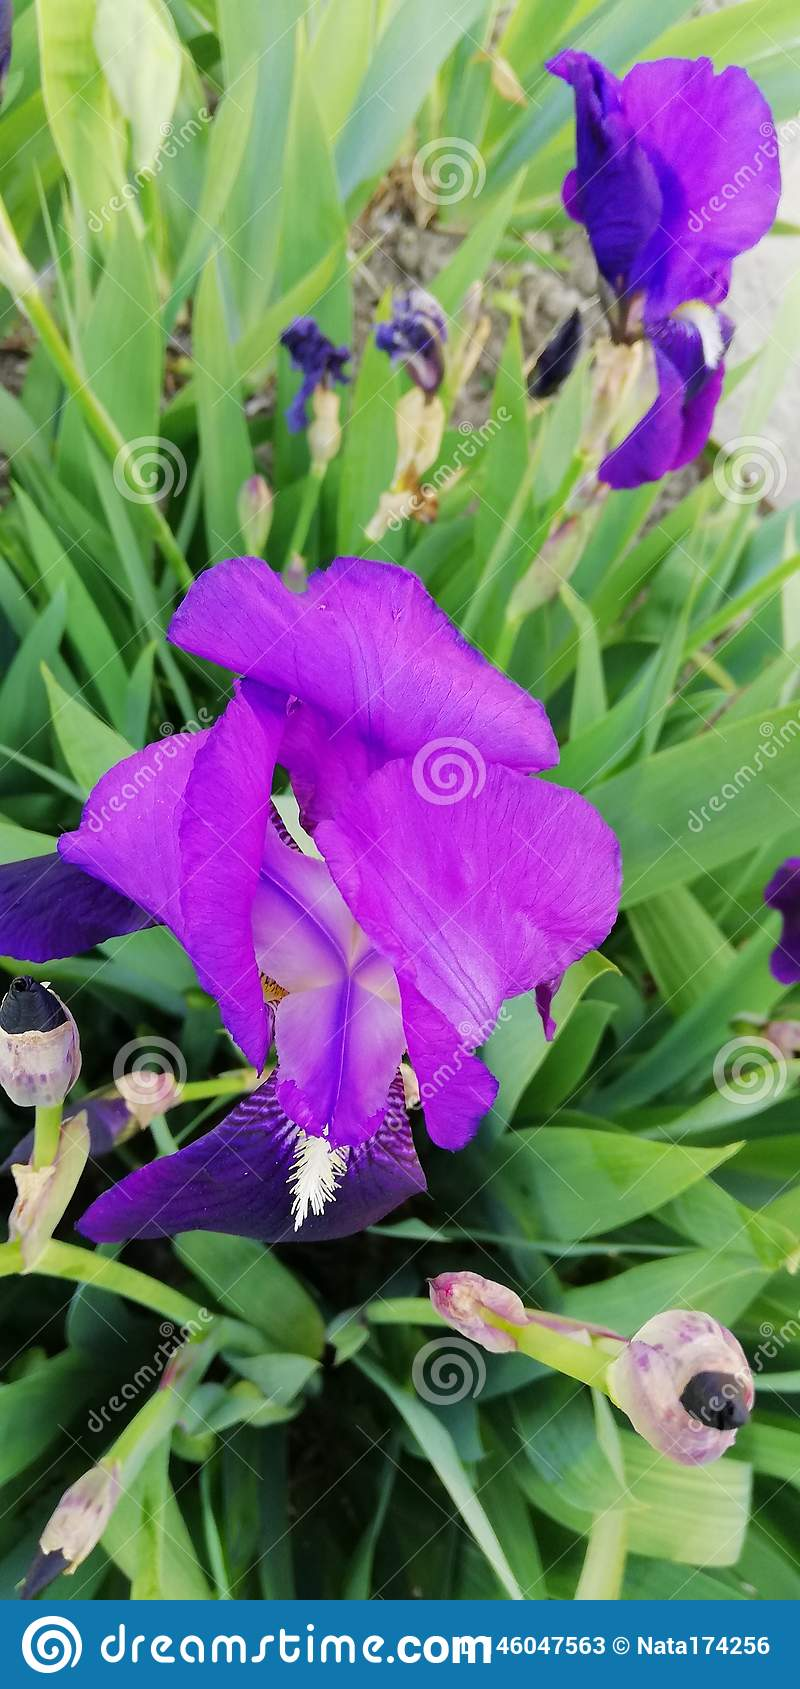 Background. Living miracle. Exquisite iris flower on the background of green leaves and grass